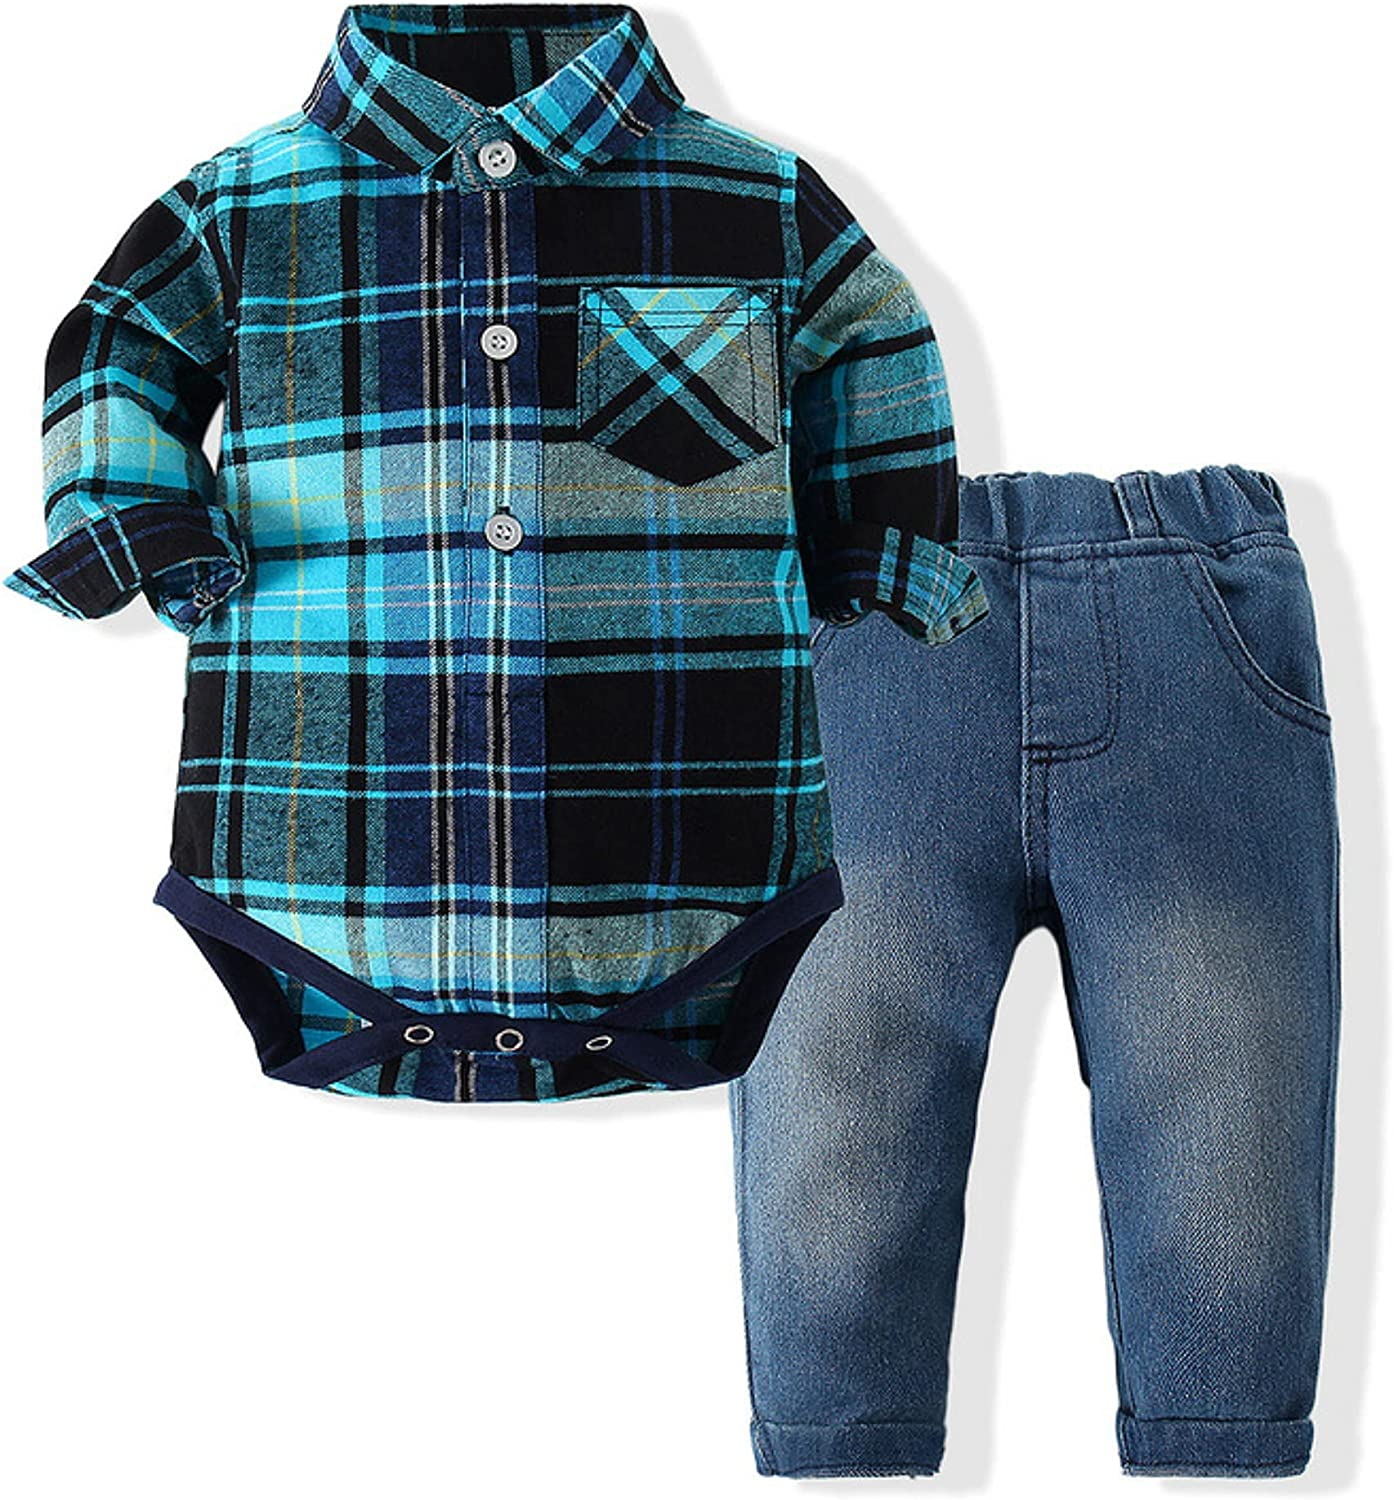 Toddler Boy Pants Outfits Shirt Jeans Outfit